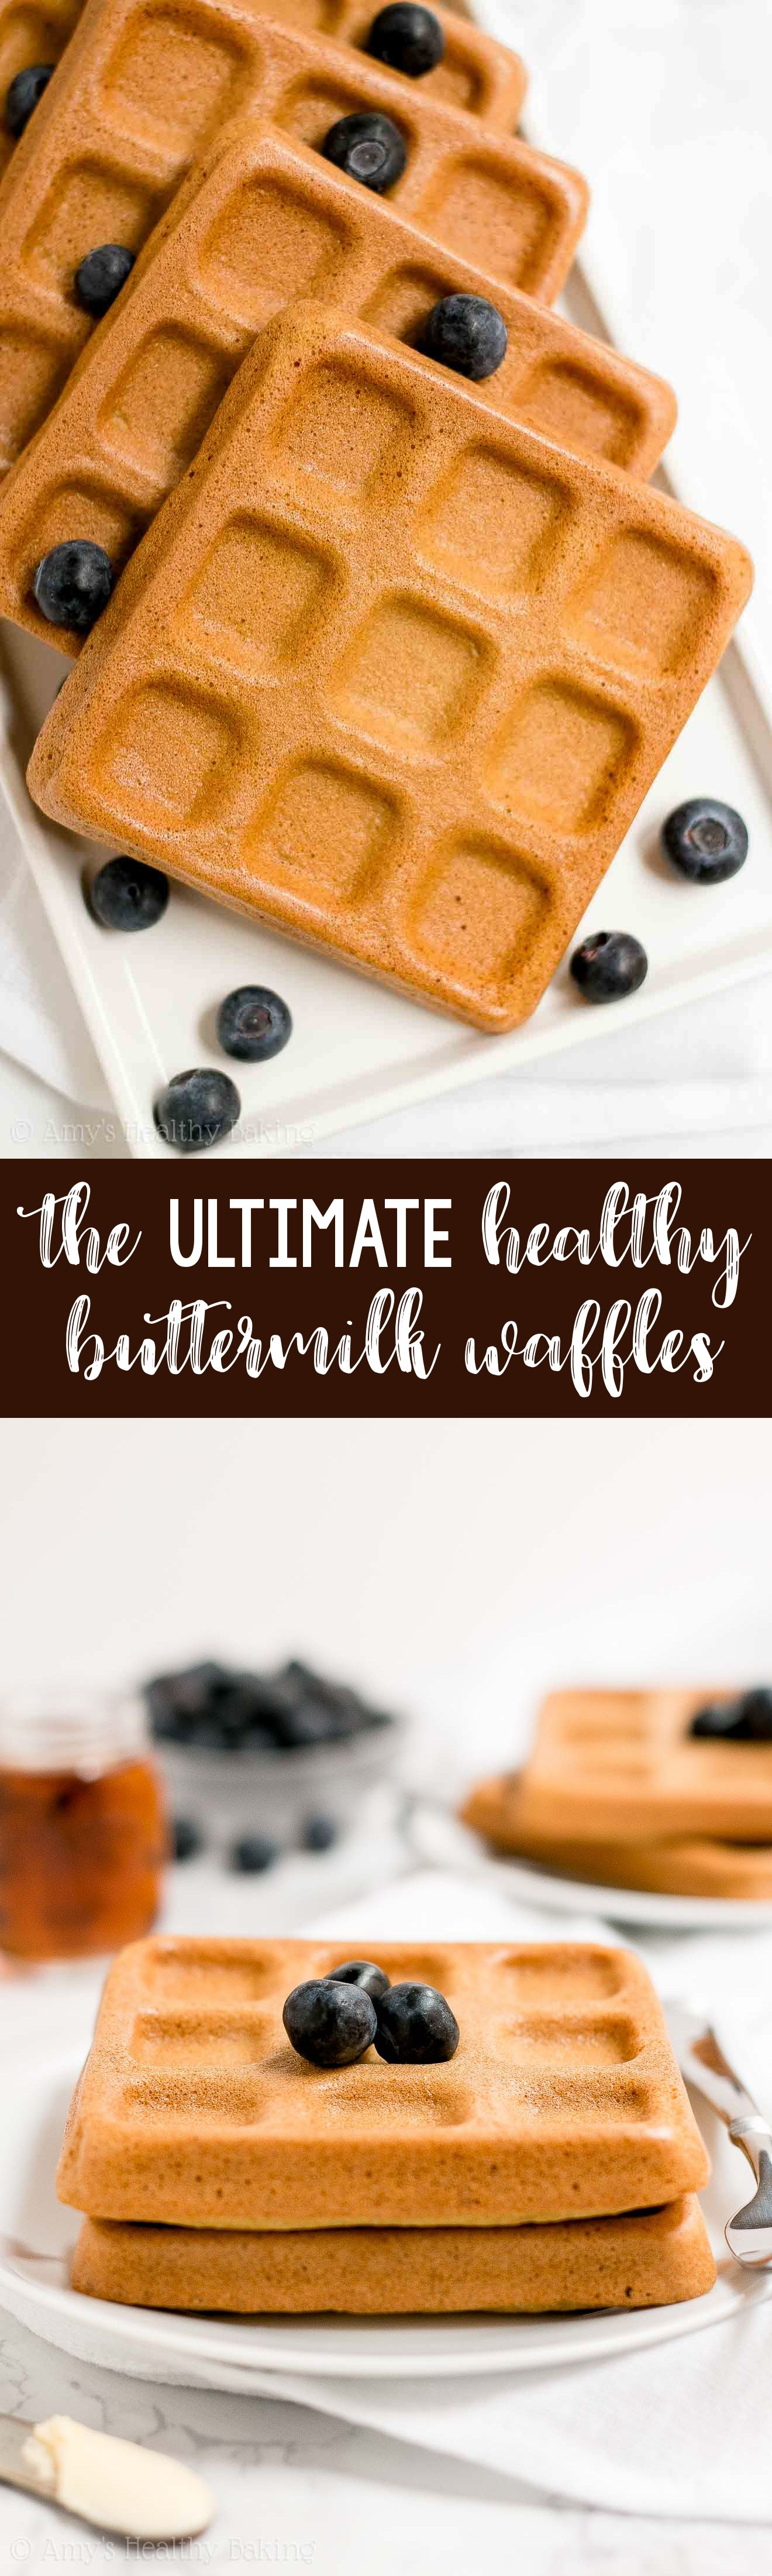 The Best Healthy Buttermilk Waffles Only 102 Calories They Re Truly Perfect Light Fluffy Crispy On T Waffle Recipe Healthy Healthy Waffles Healthy Baking